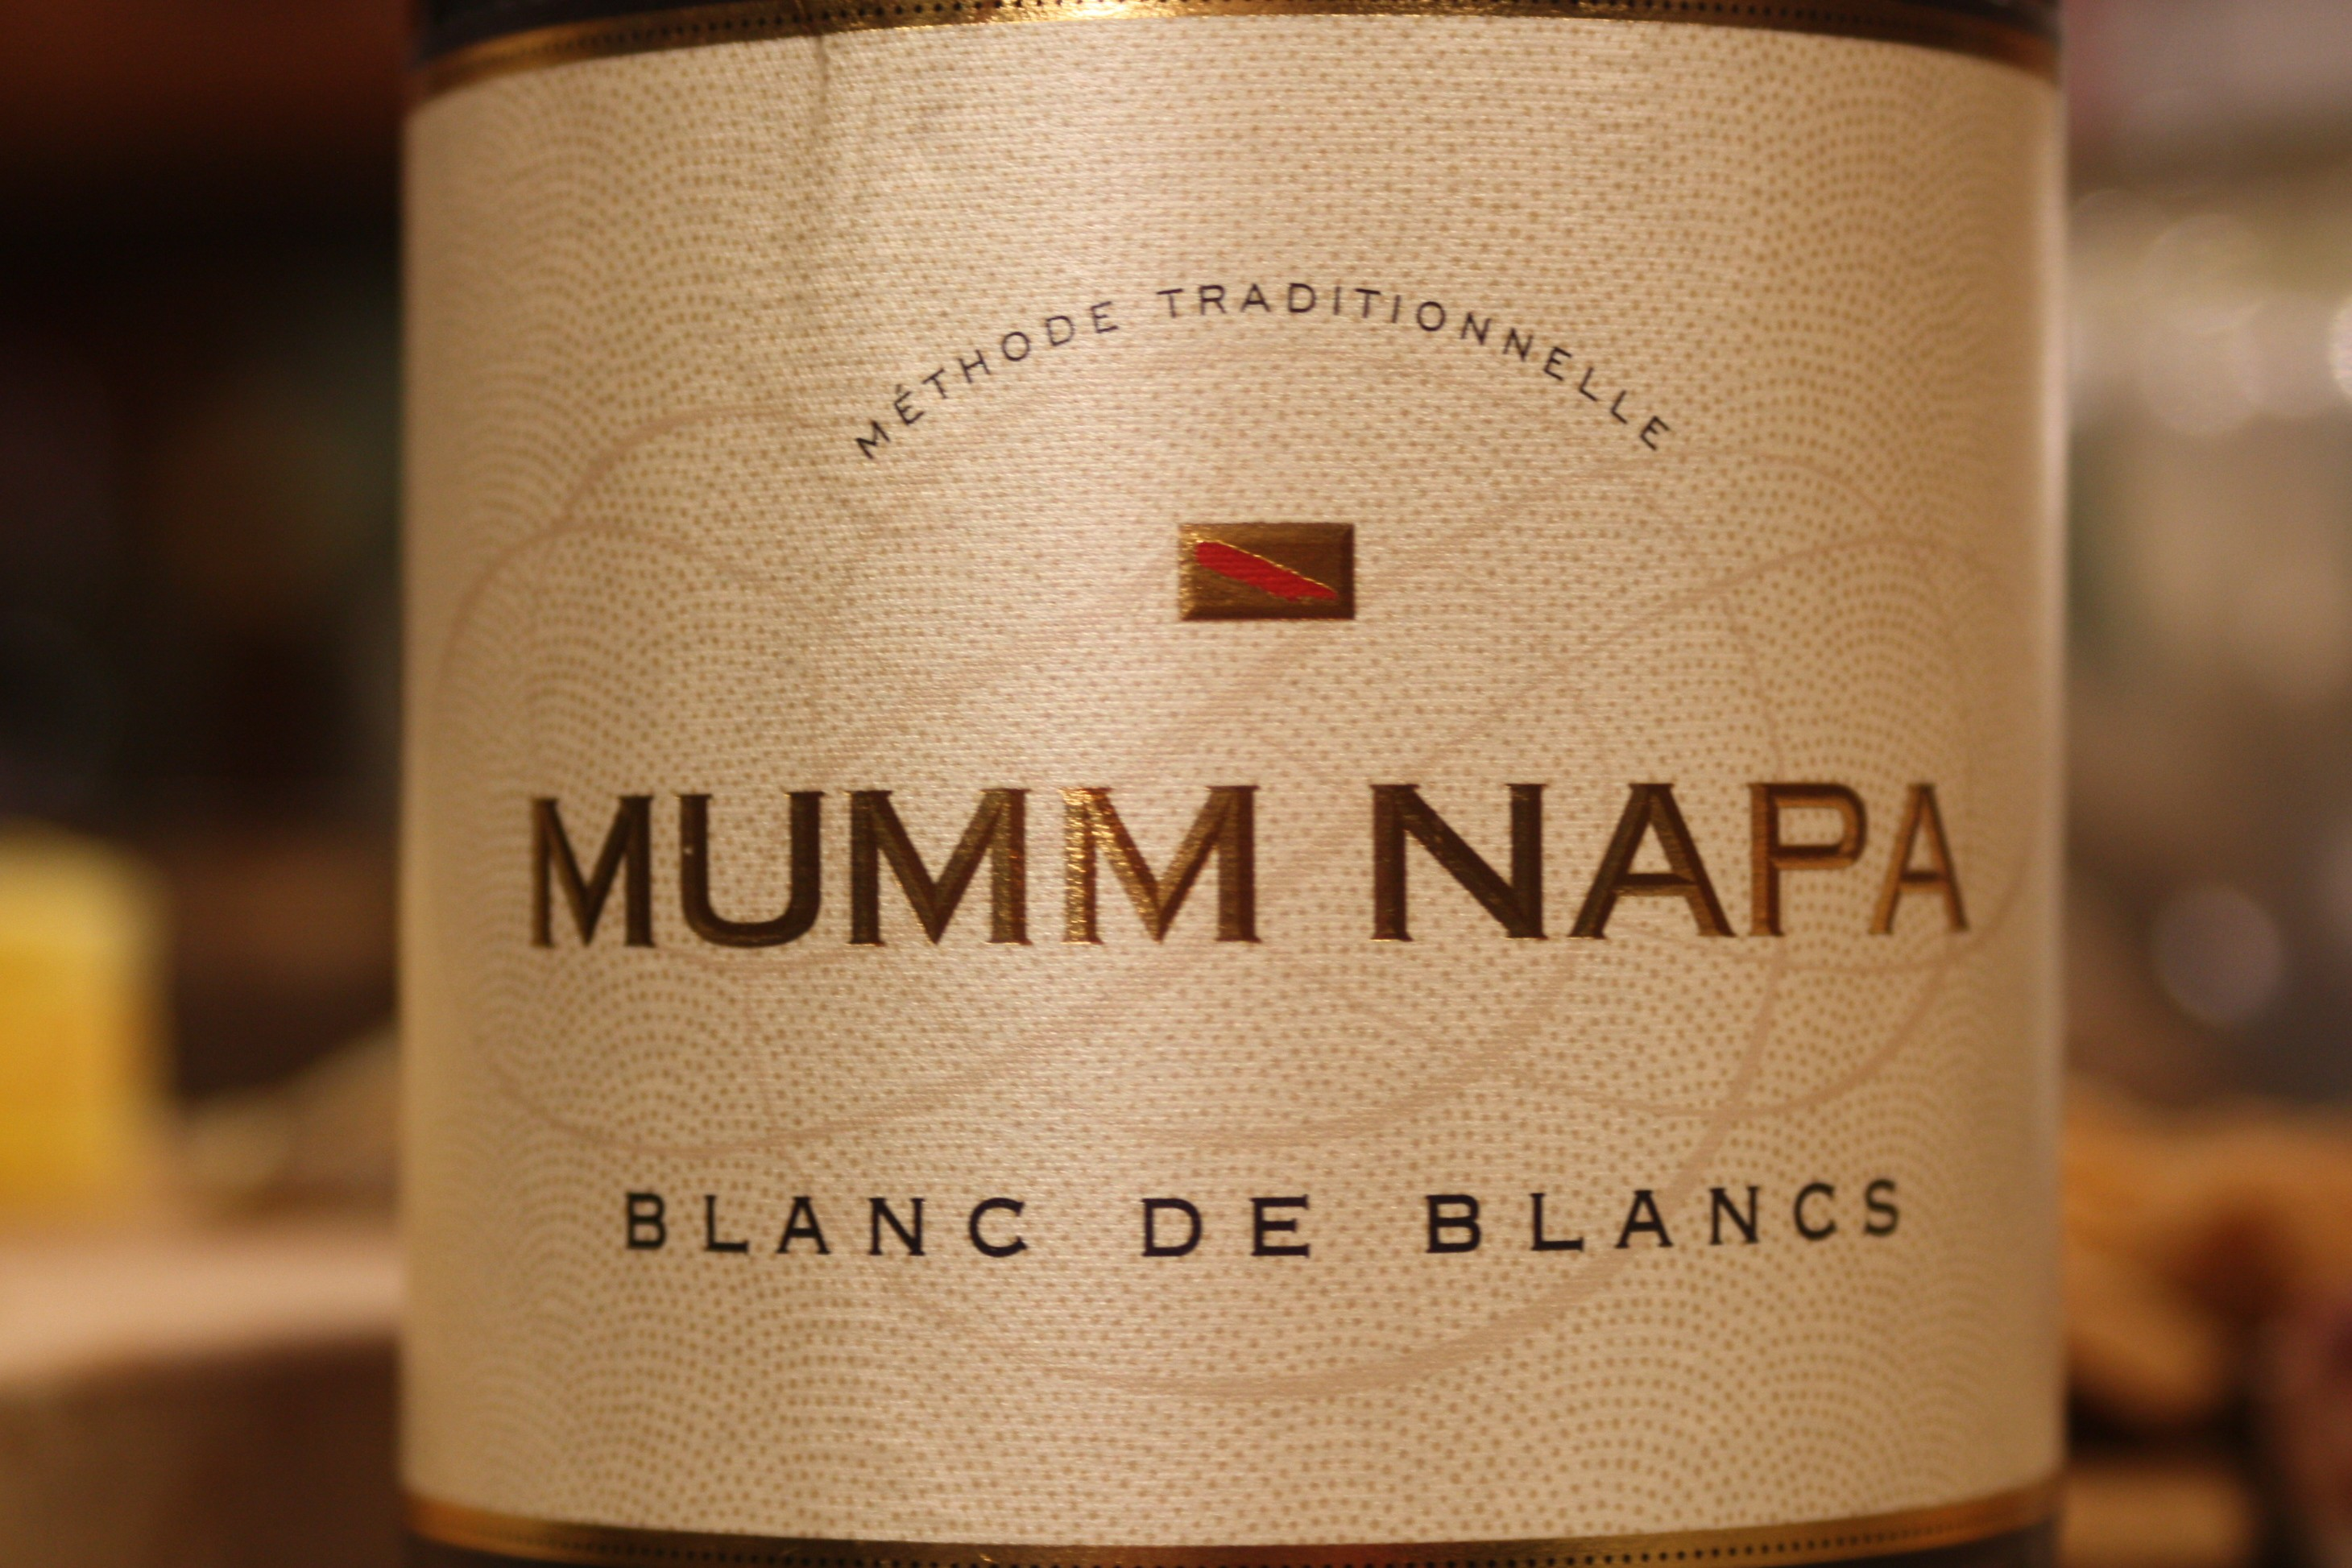 Methode Traditionnelle Mumm Napa Blanc De Blancs